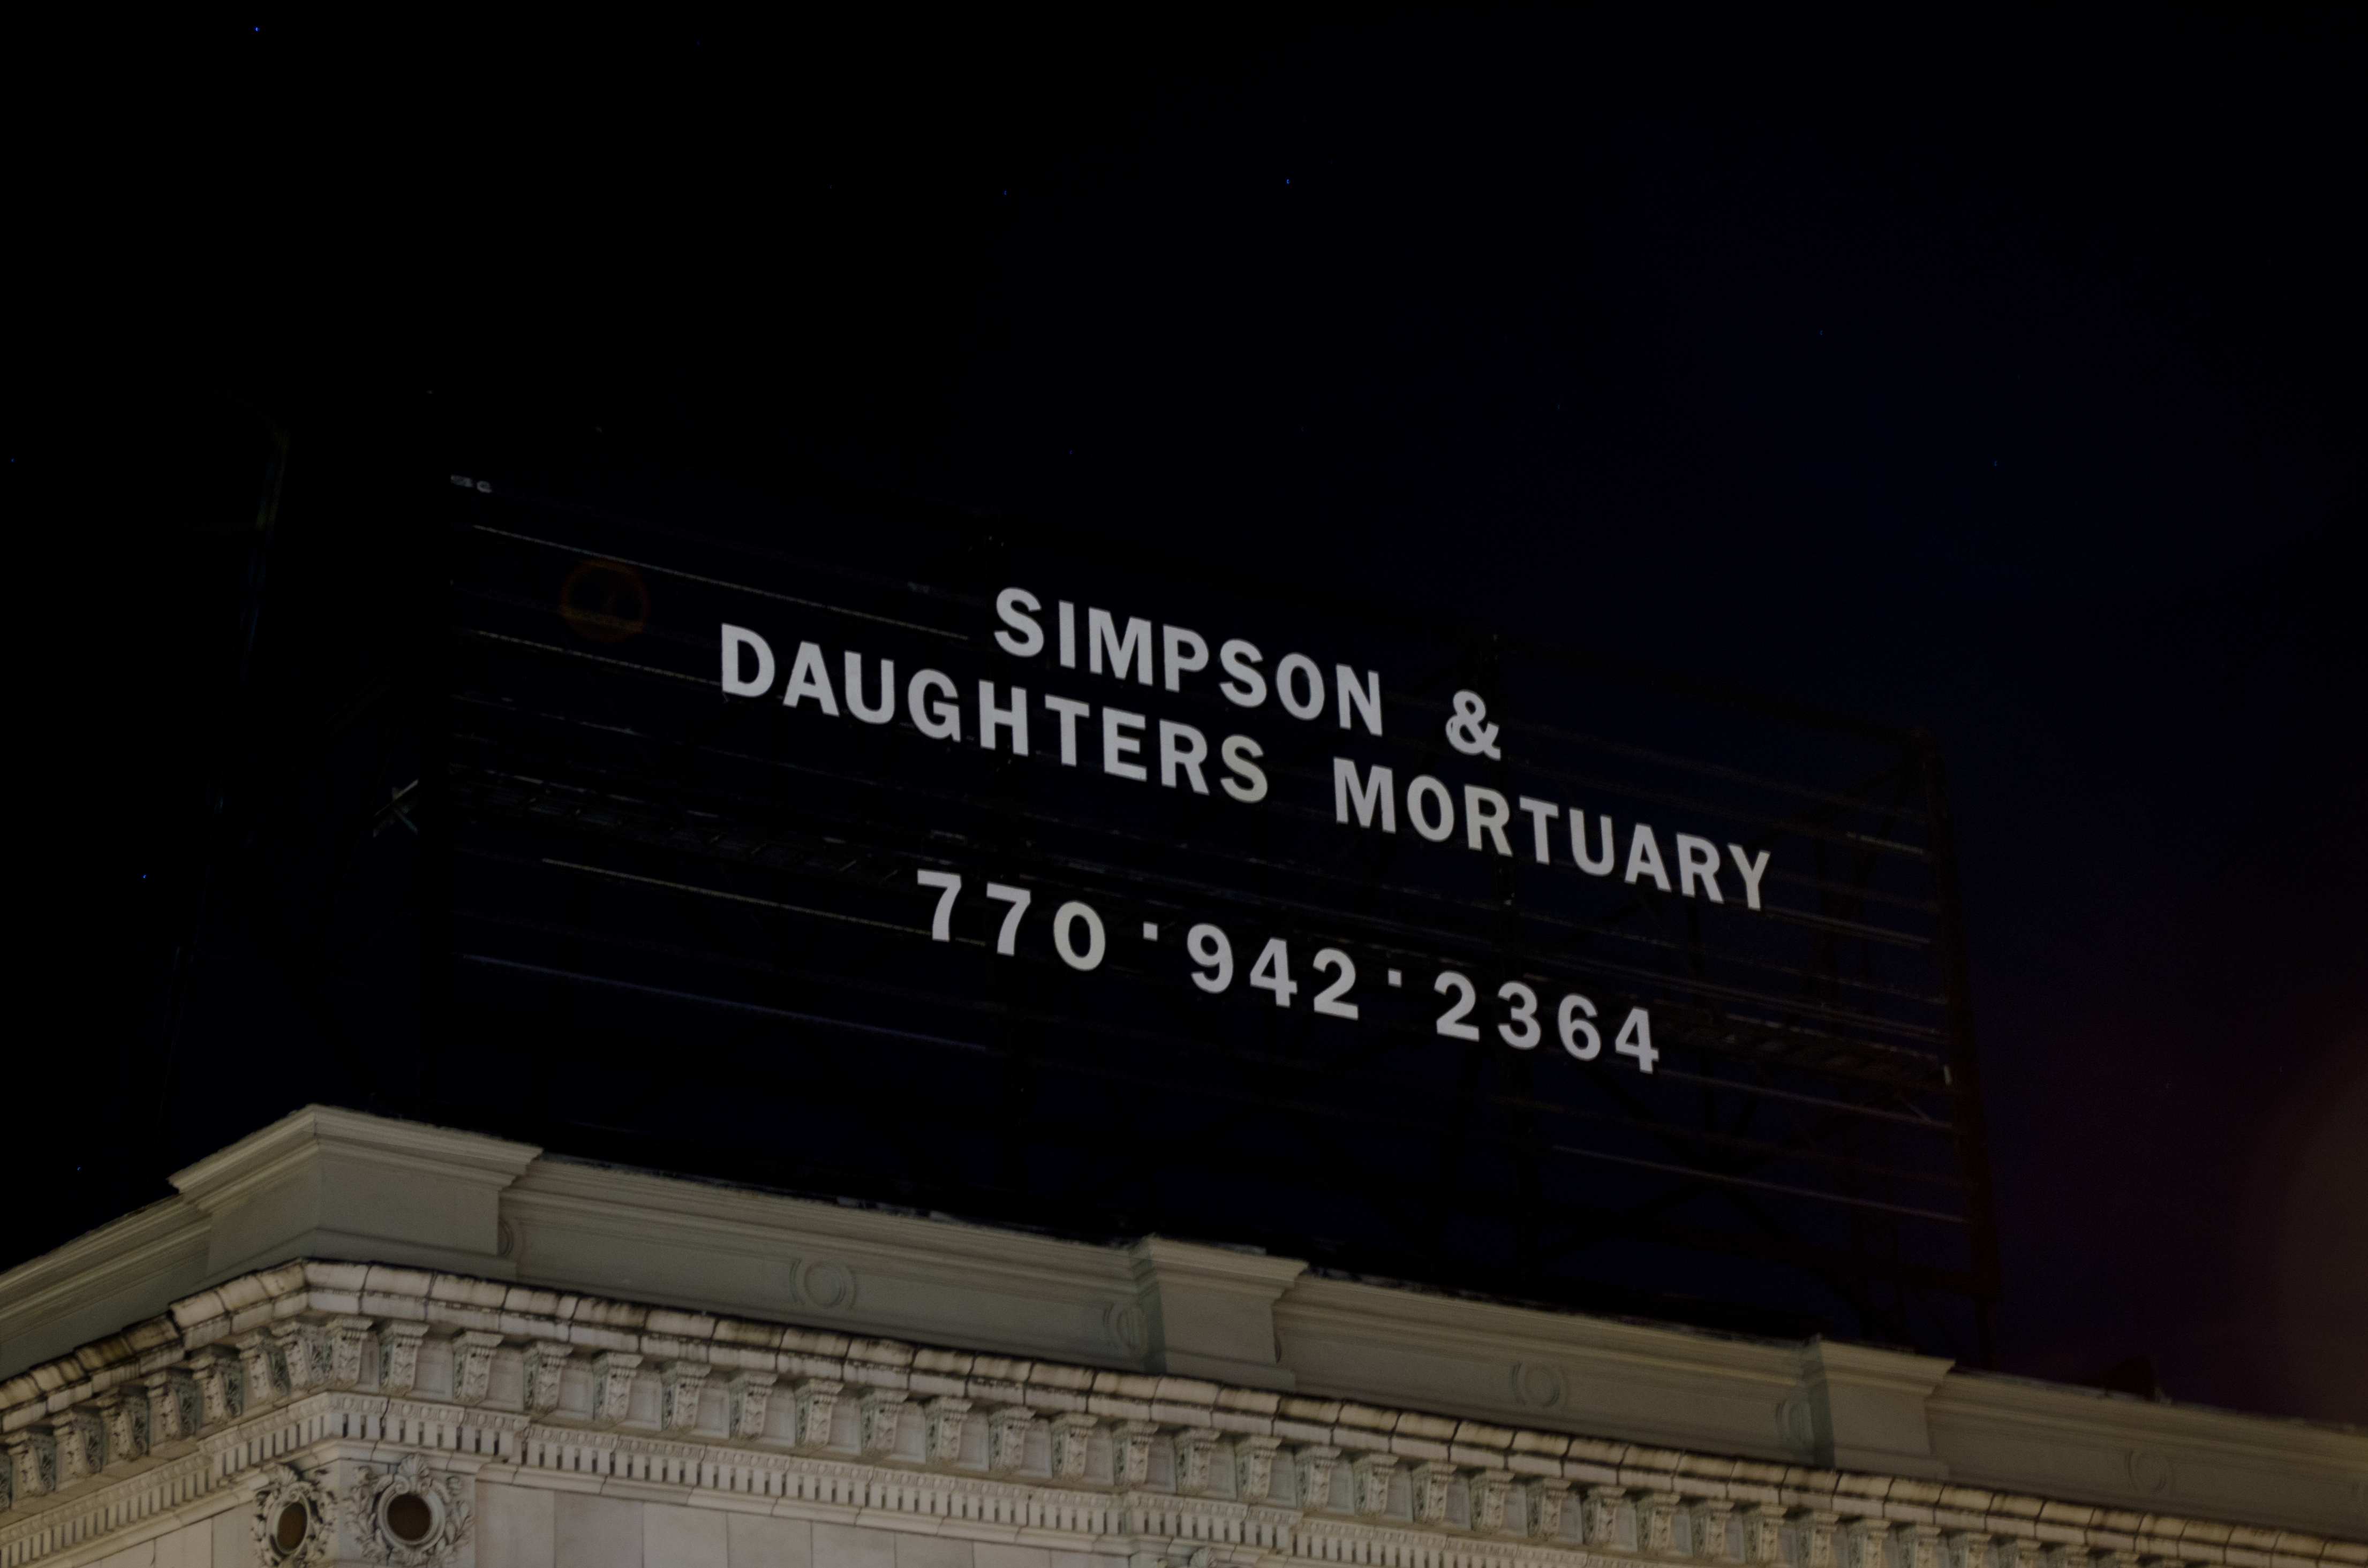 Simpson & Daughters Mortuary